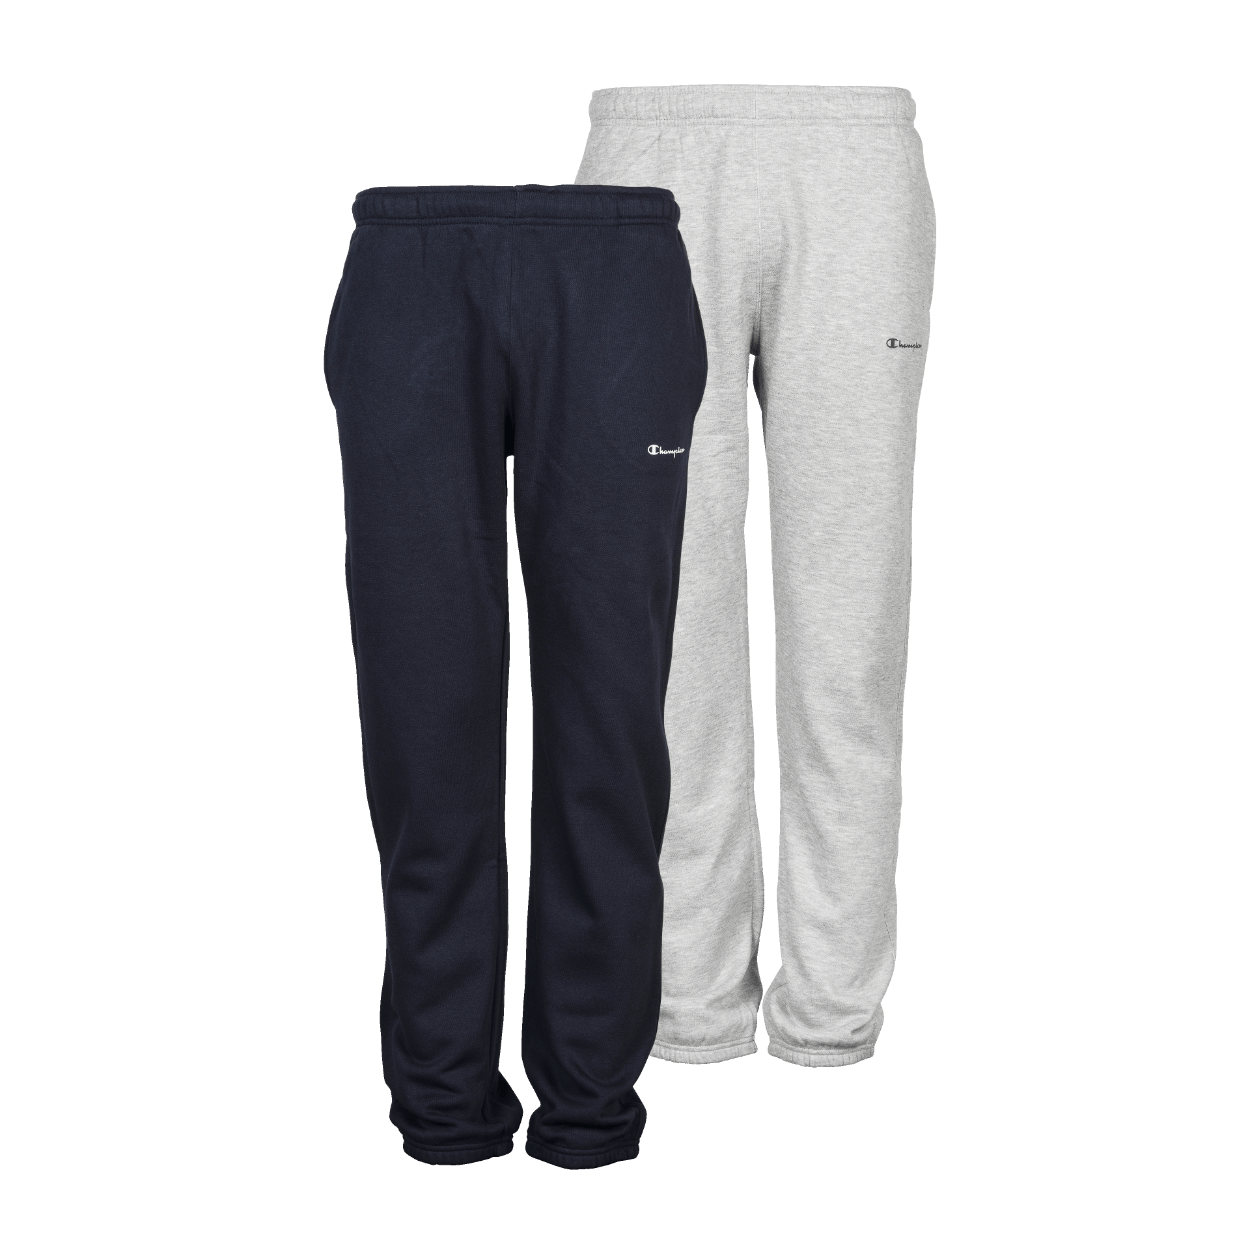 Rode Joggingbroek Heren.Champion Heren Joggingbroek Voordelig Bij Aldi